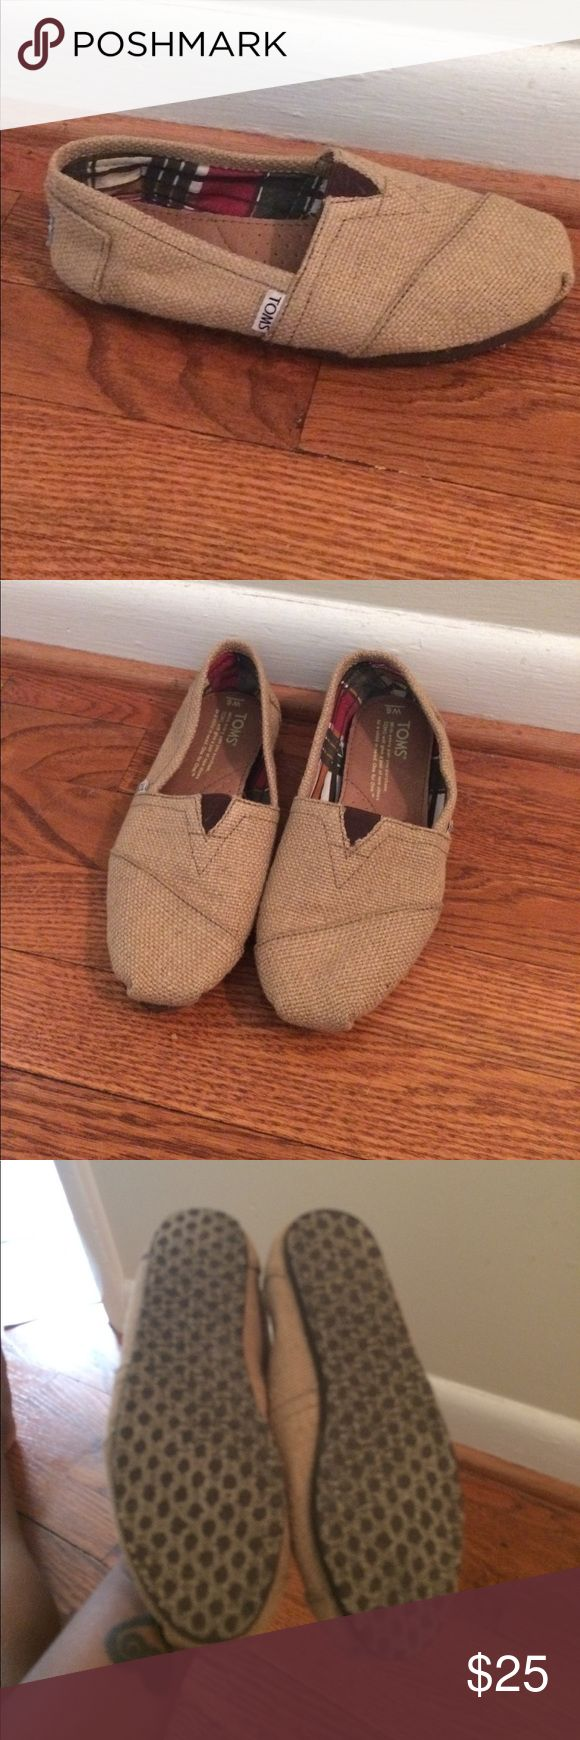 Tan Burlap Toms Tan Burlap Toms. Worn once, run small. Toms Shoes Flats & Loafers